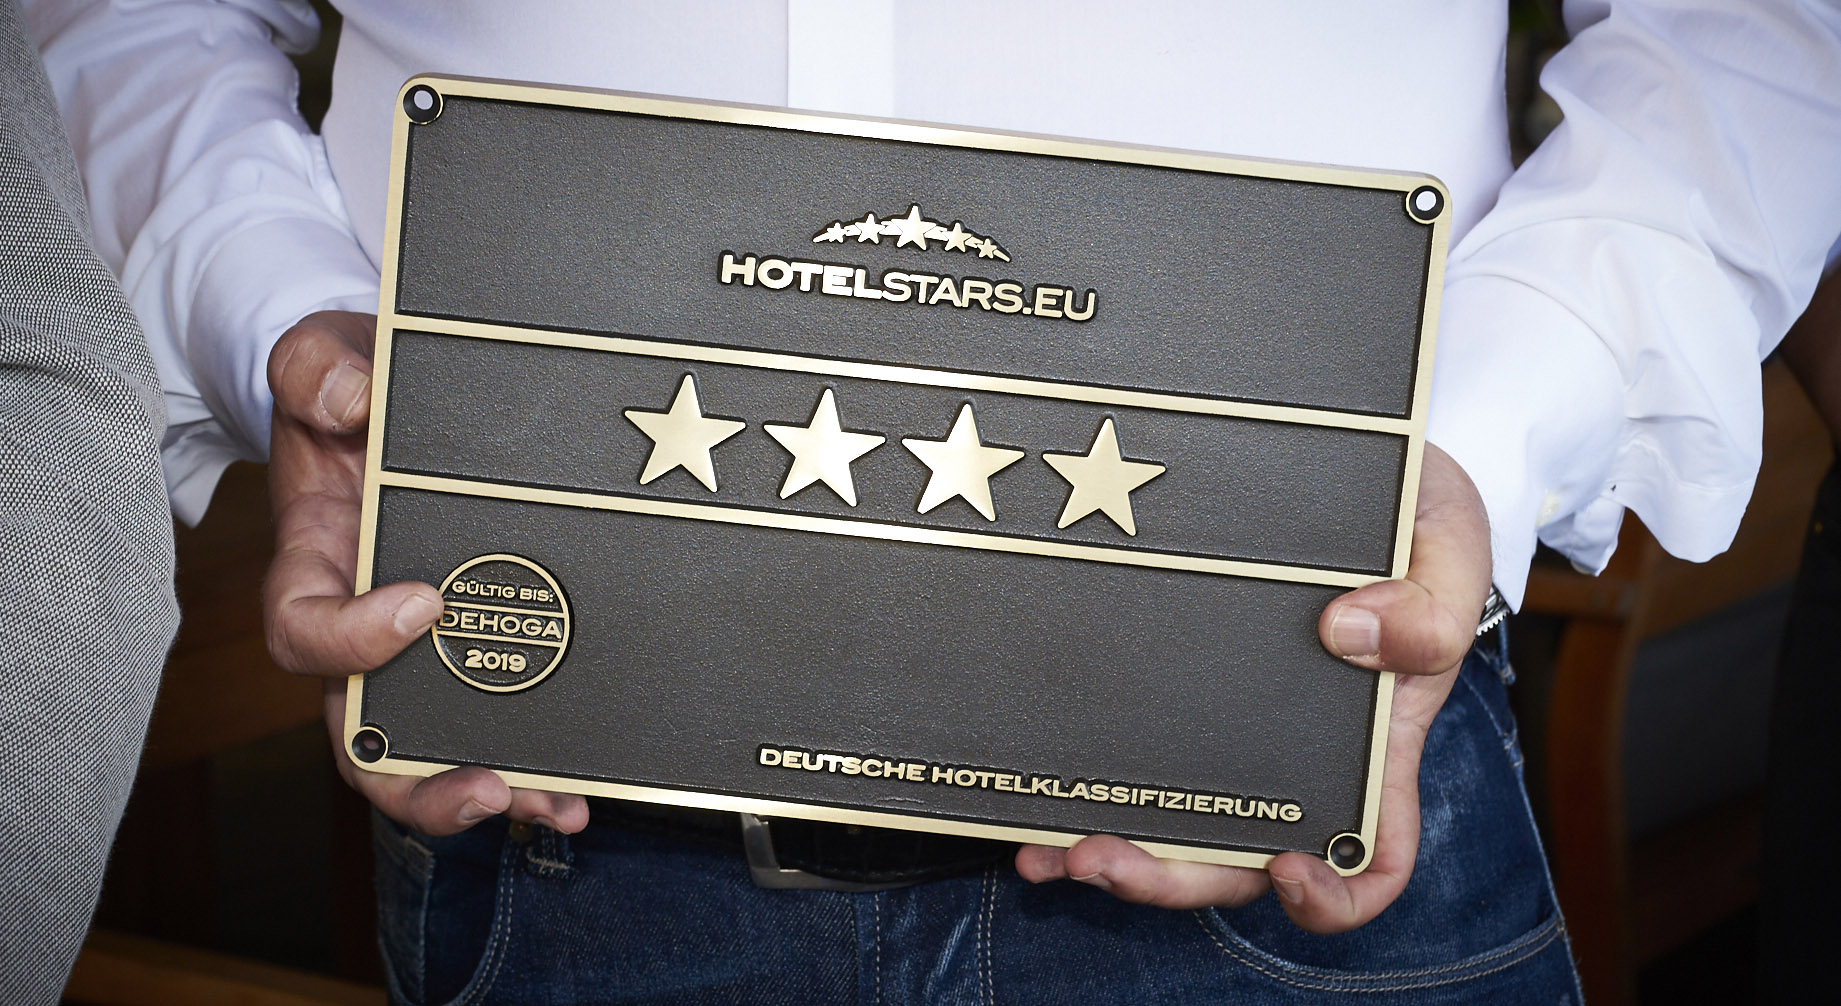 Finding the right business hotel: Can one rely on star ratings?